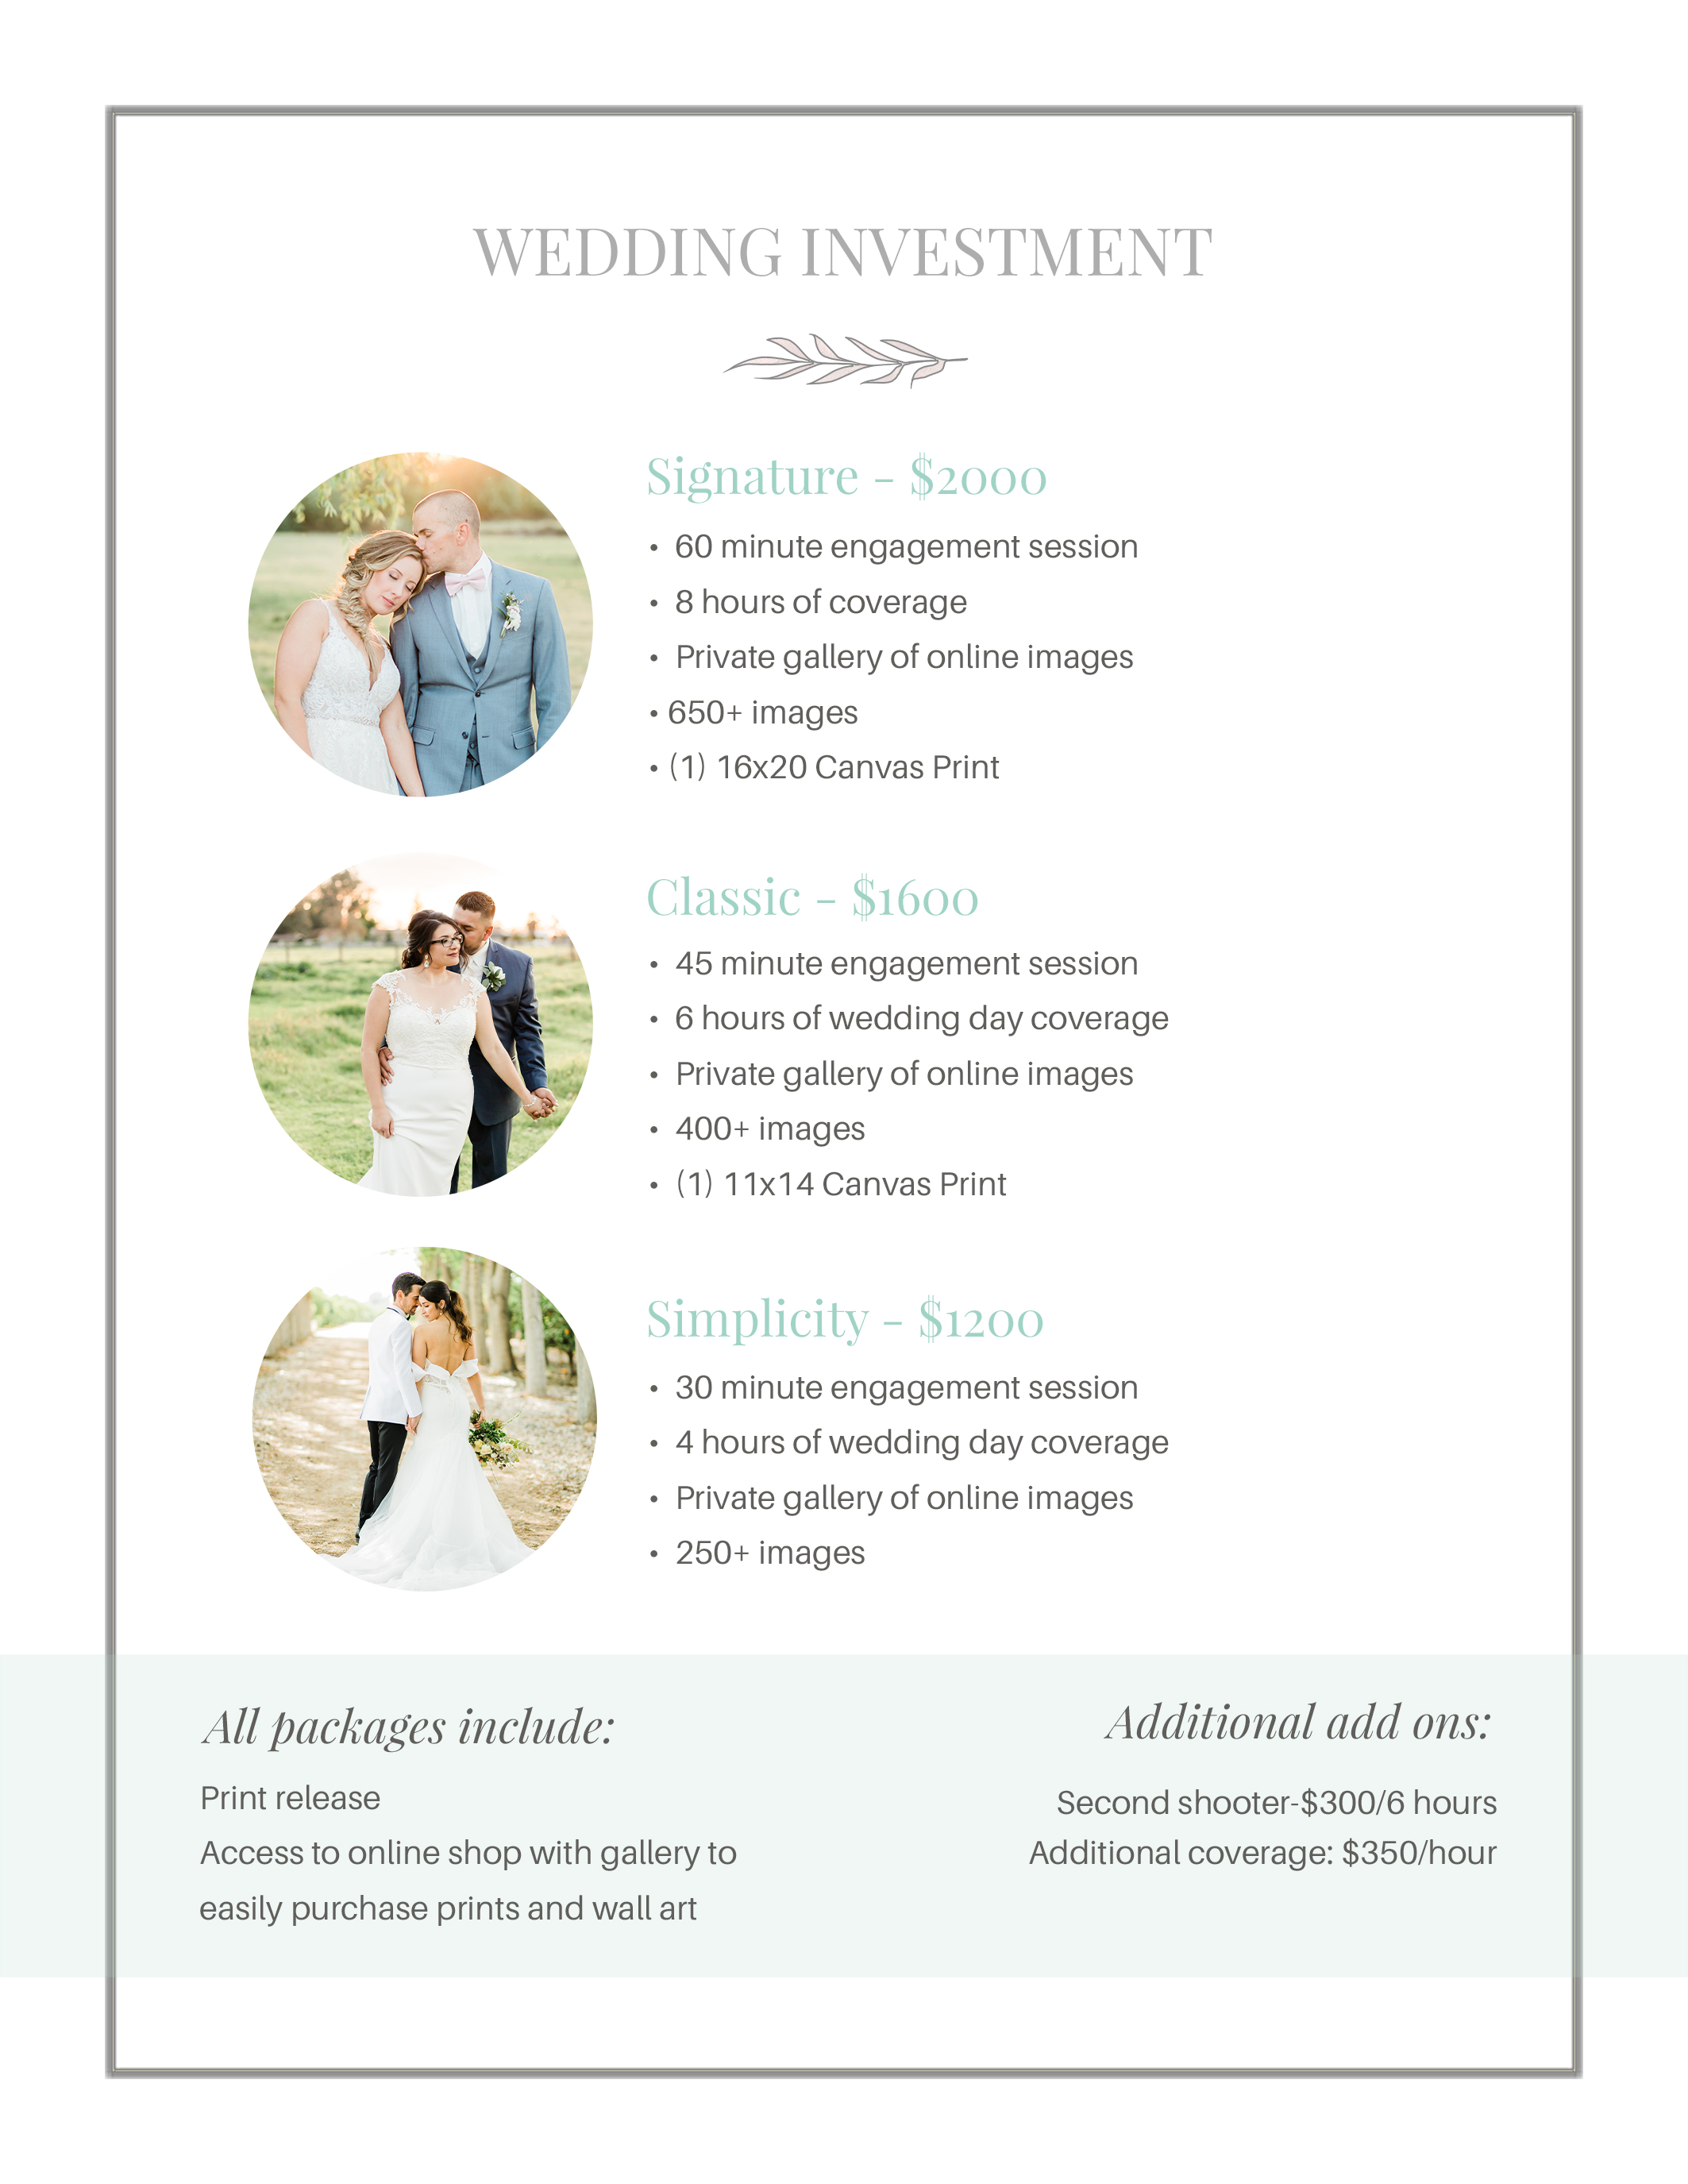 MTP wedding investment